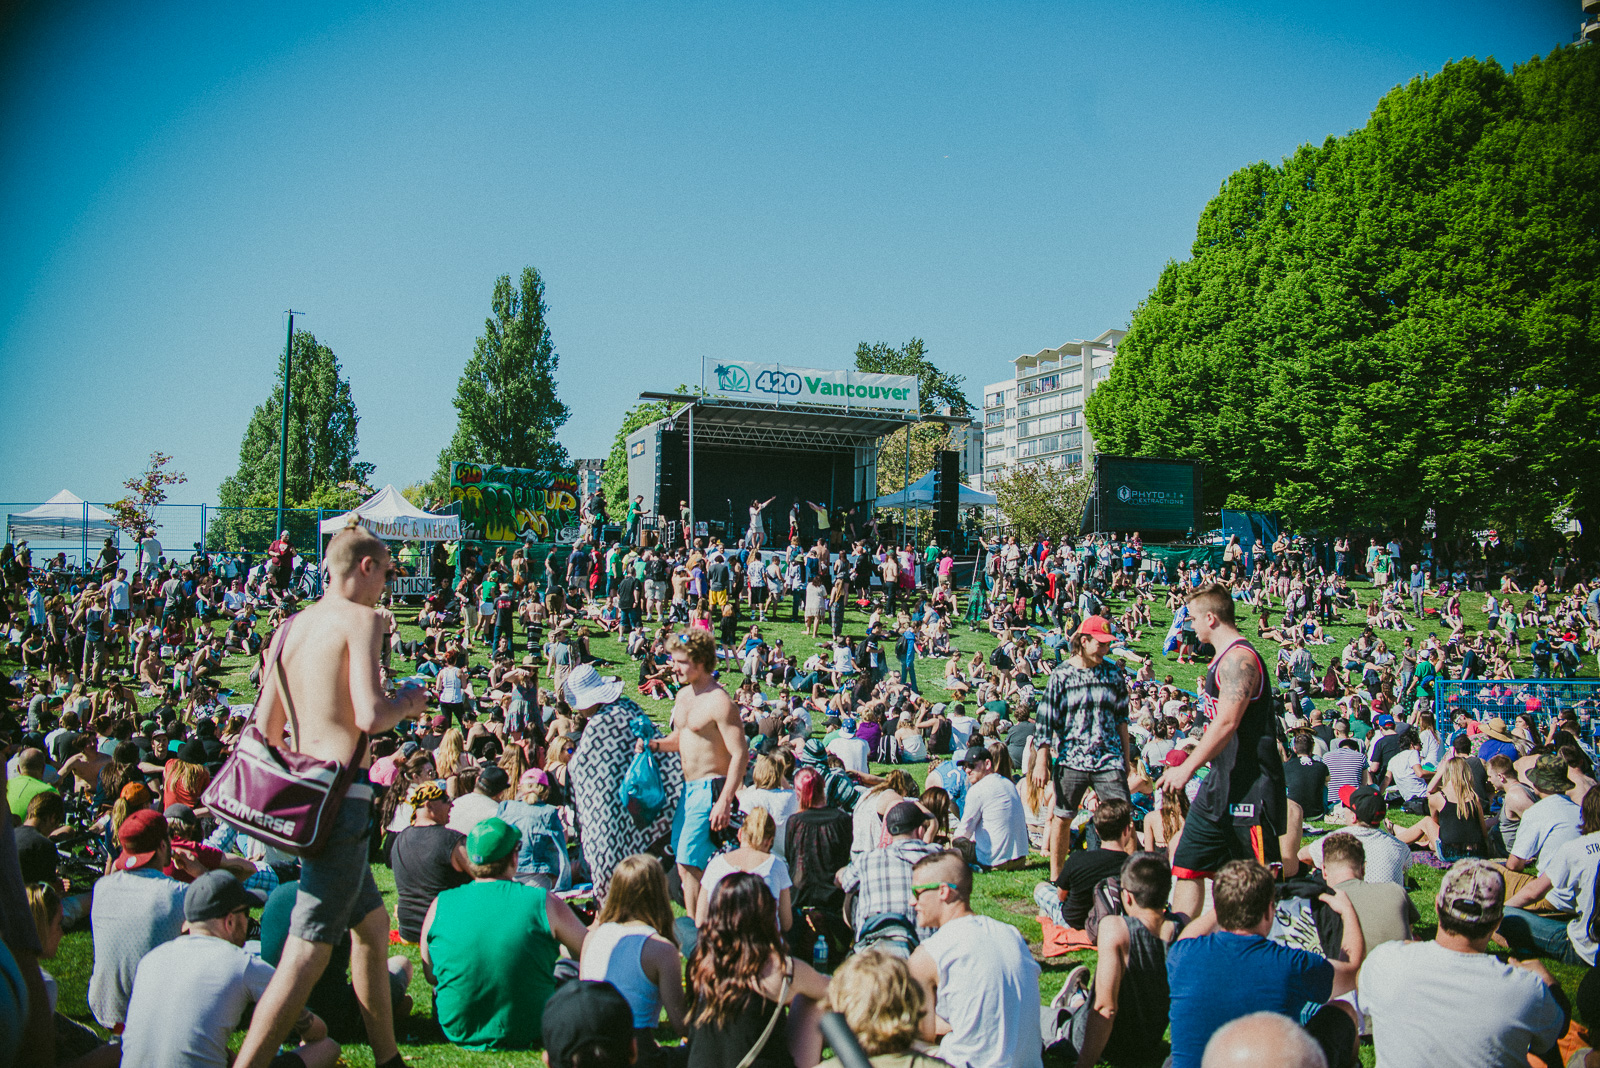 An estimated 25,000 - 50,000 people ended up showing for Vancouver's annual 420 event.